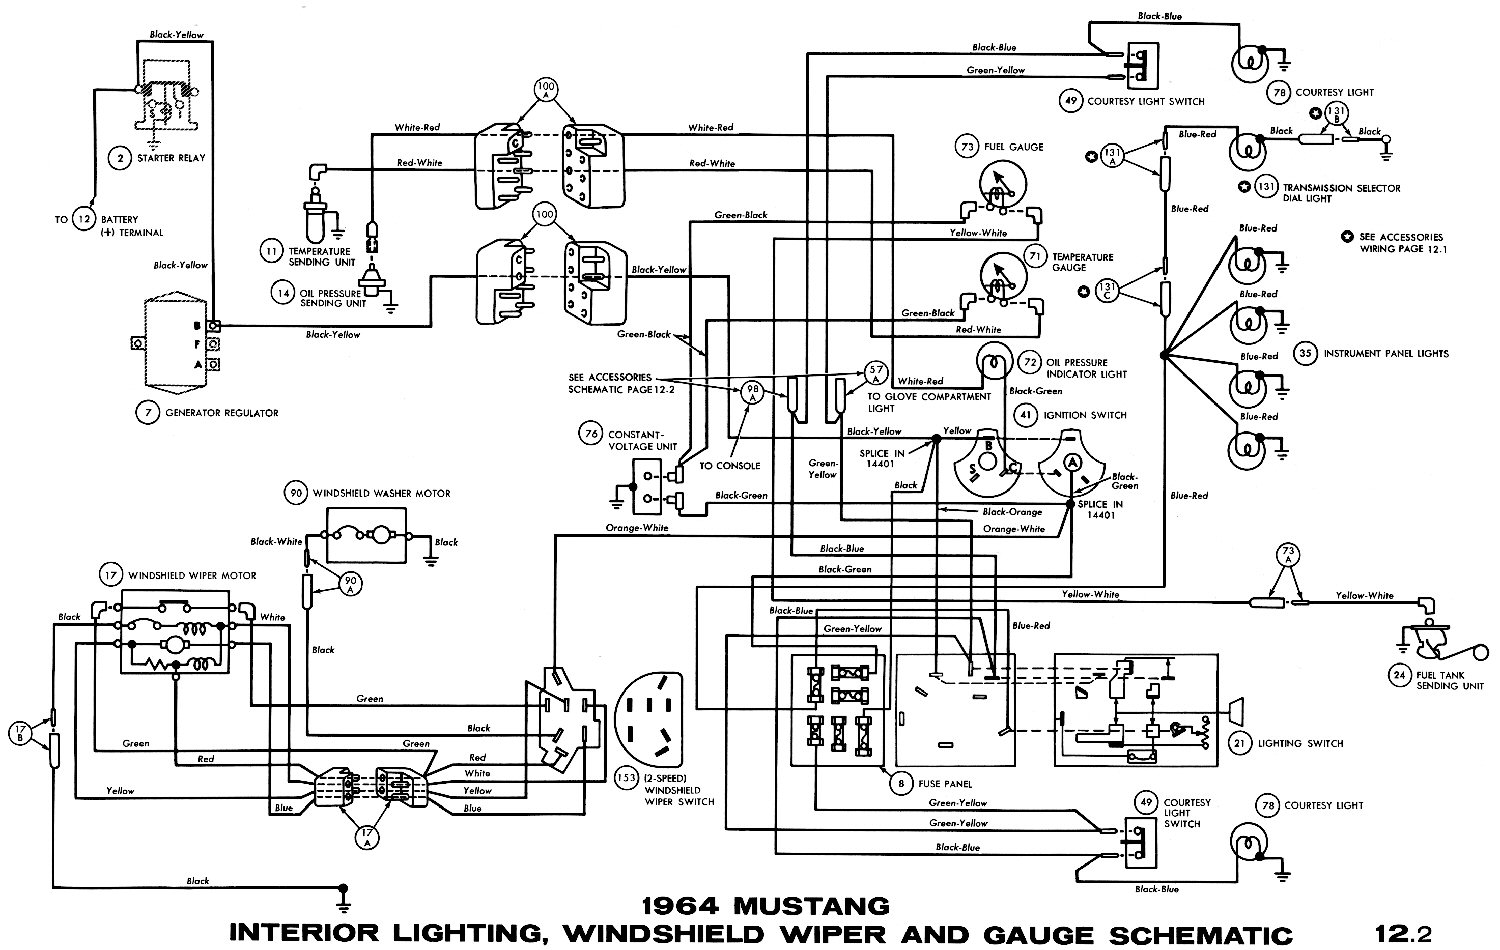 Techinfo further Mustang 2060 Wiring Diagram also 69 Camaro Steering Column Wiring Diagram For also Diagram view in addition 1966 Mustang Wiring Diagrams. on 1965 mustang ignition wiring